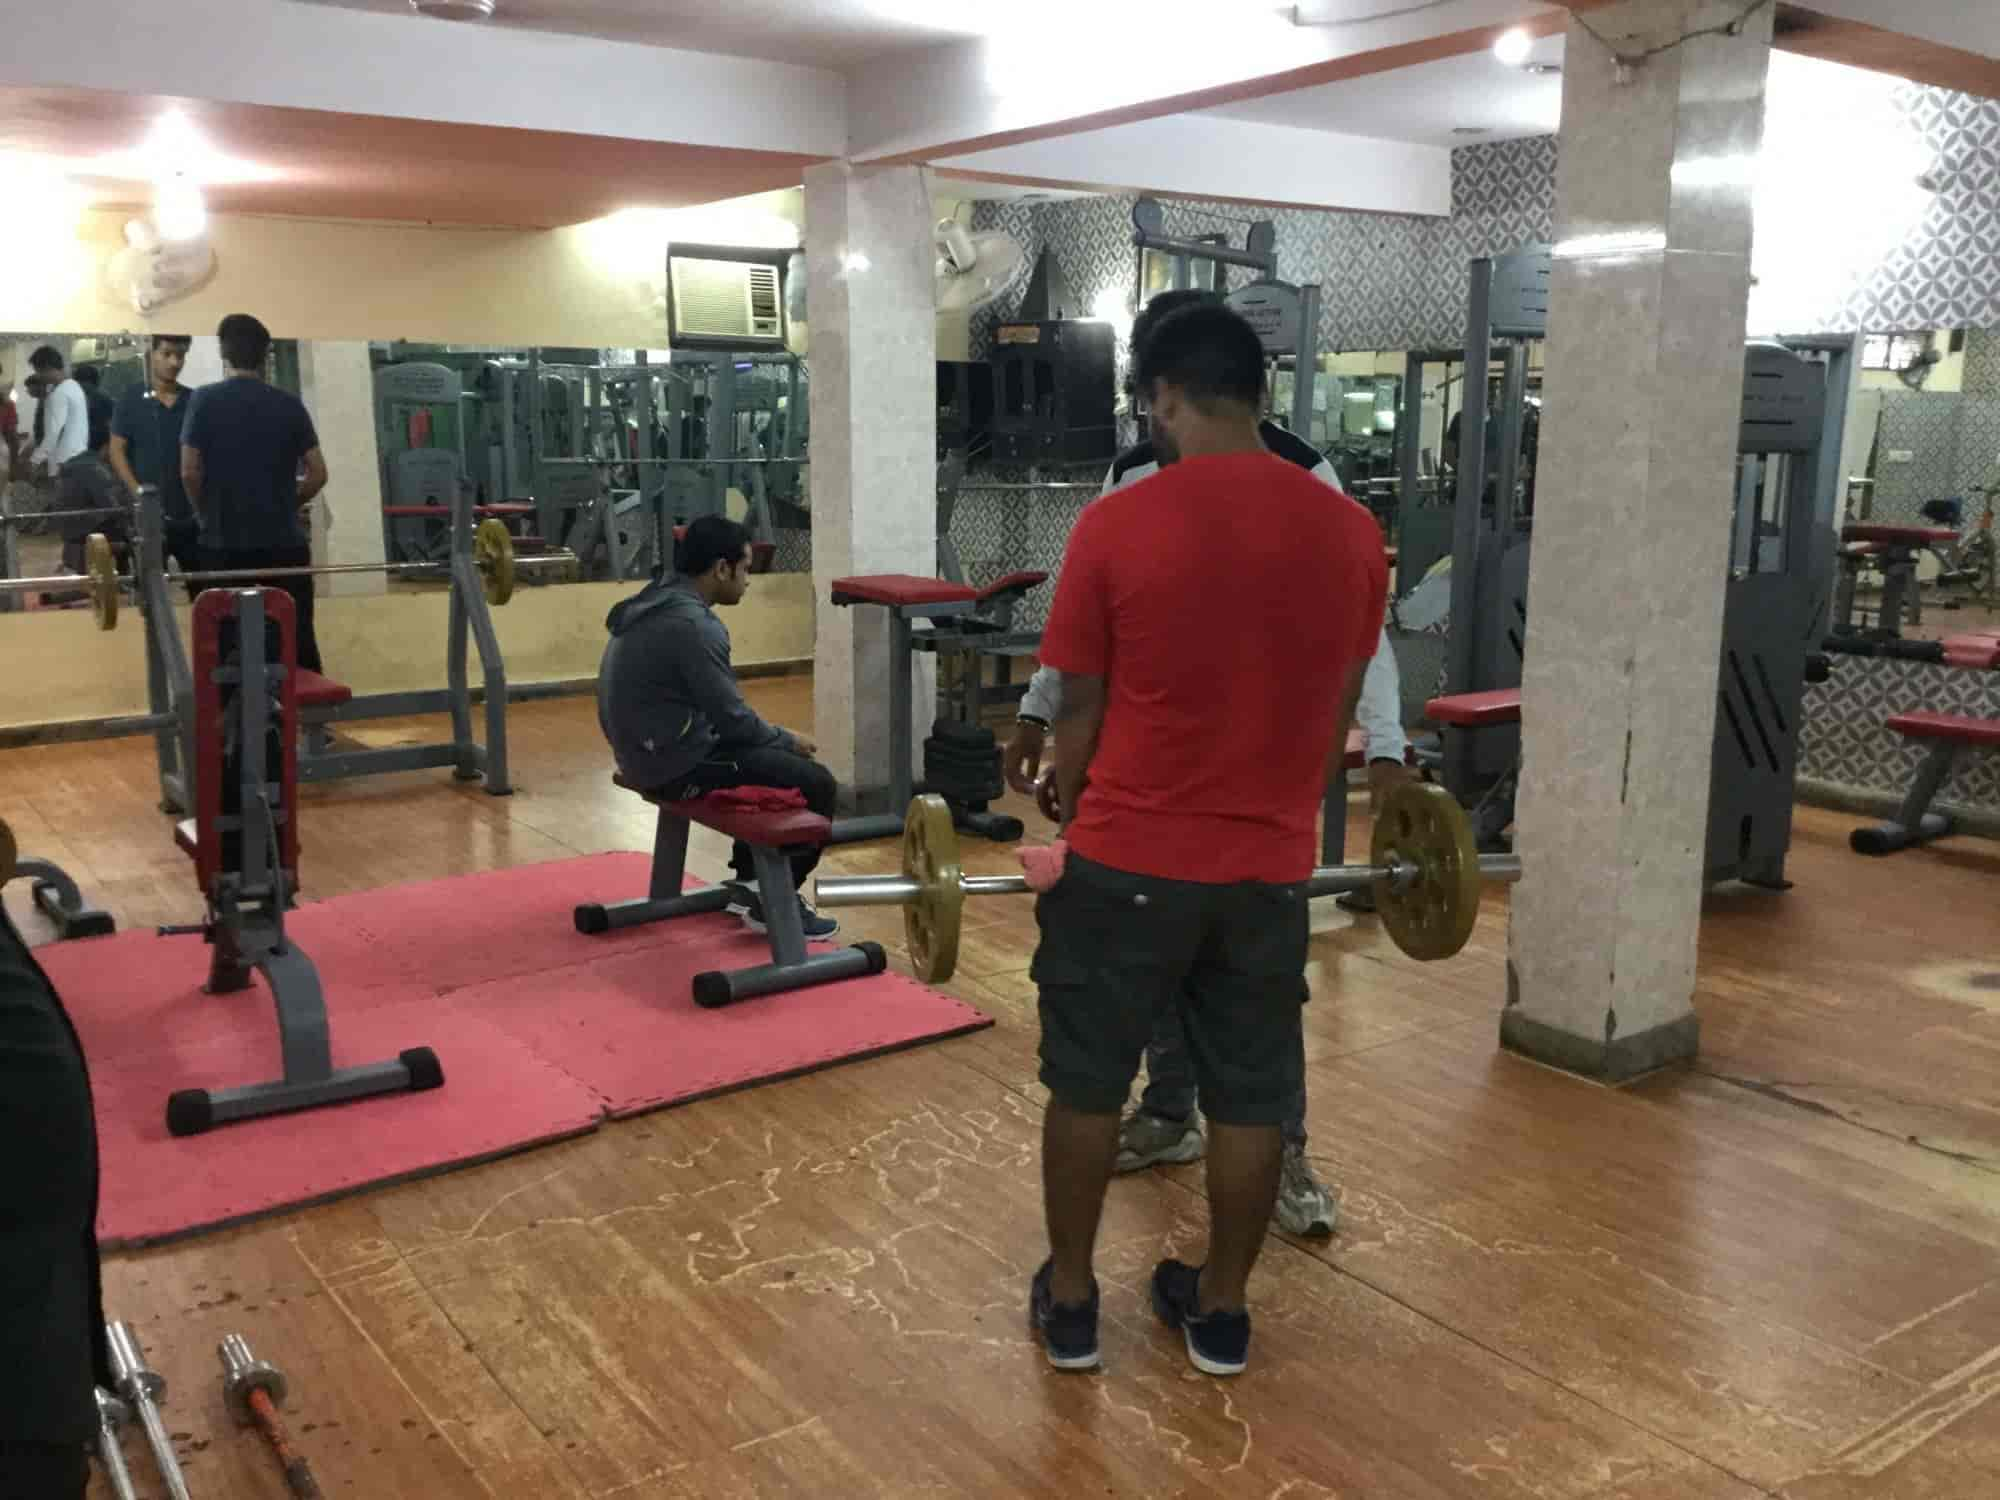 Metro Health Care Gym Photos Sector 35 Noida Pictures Images